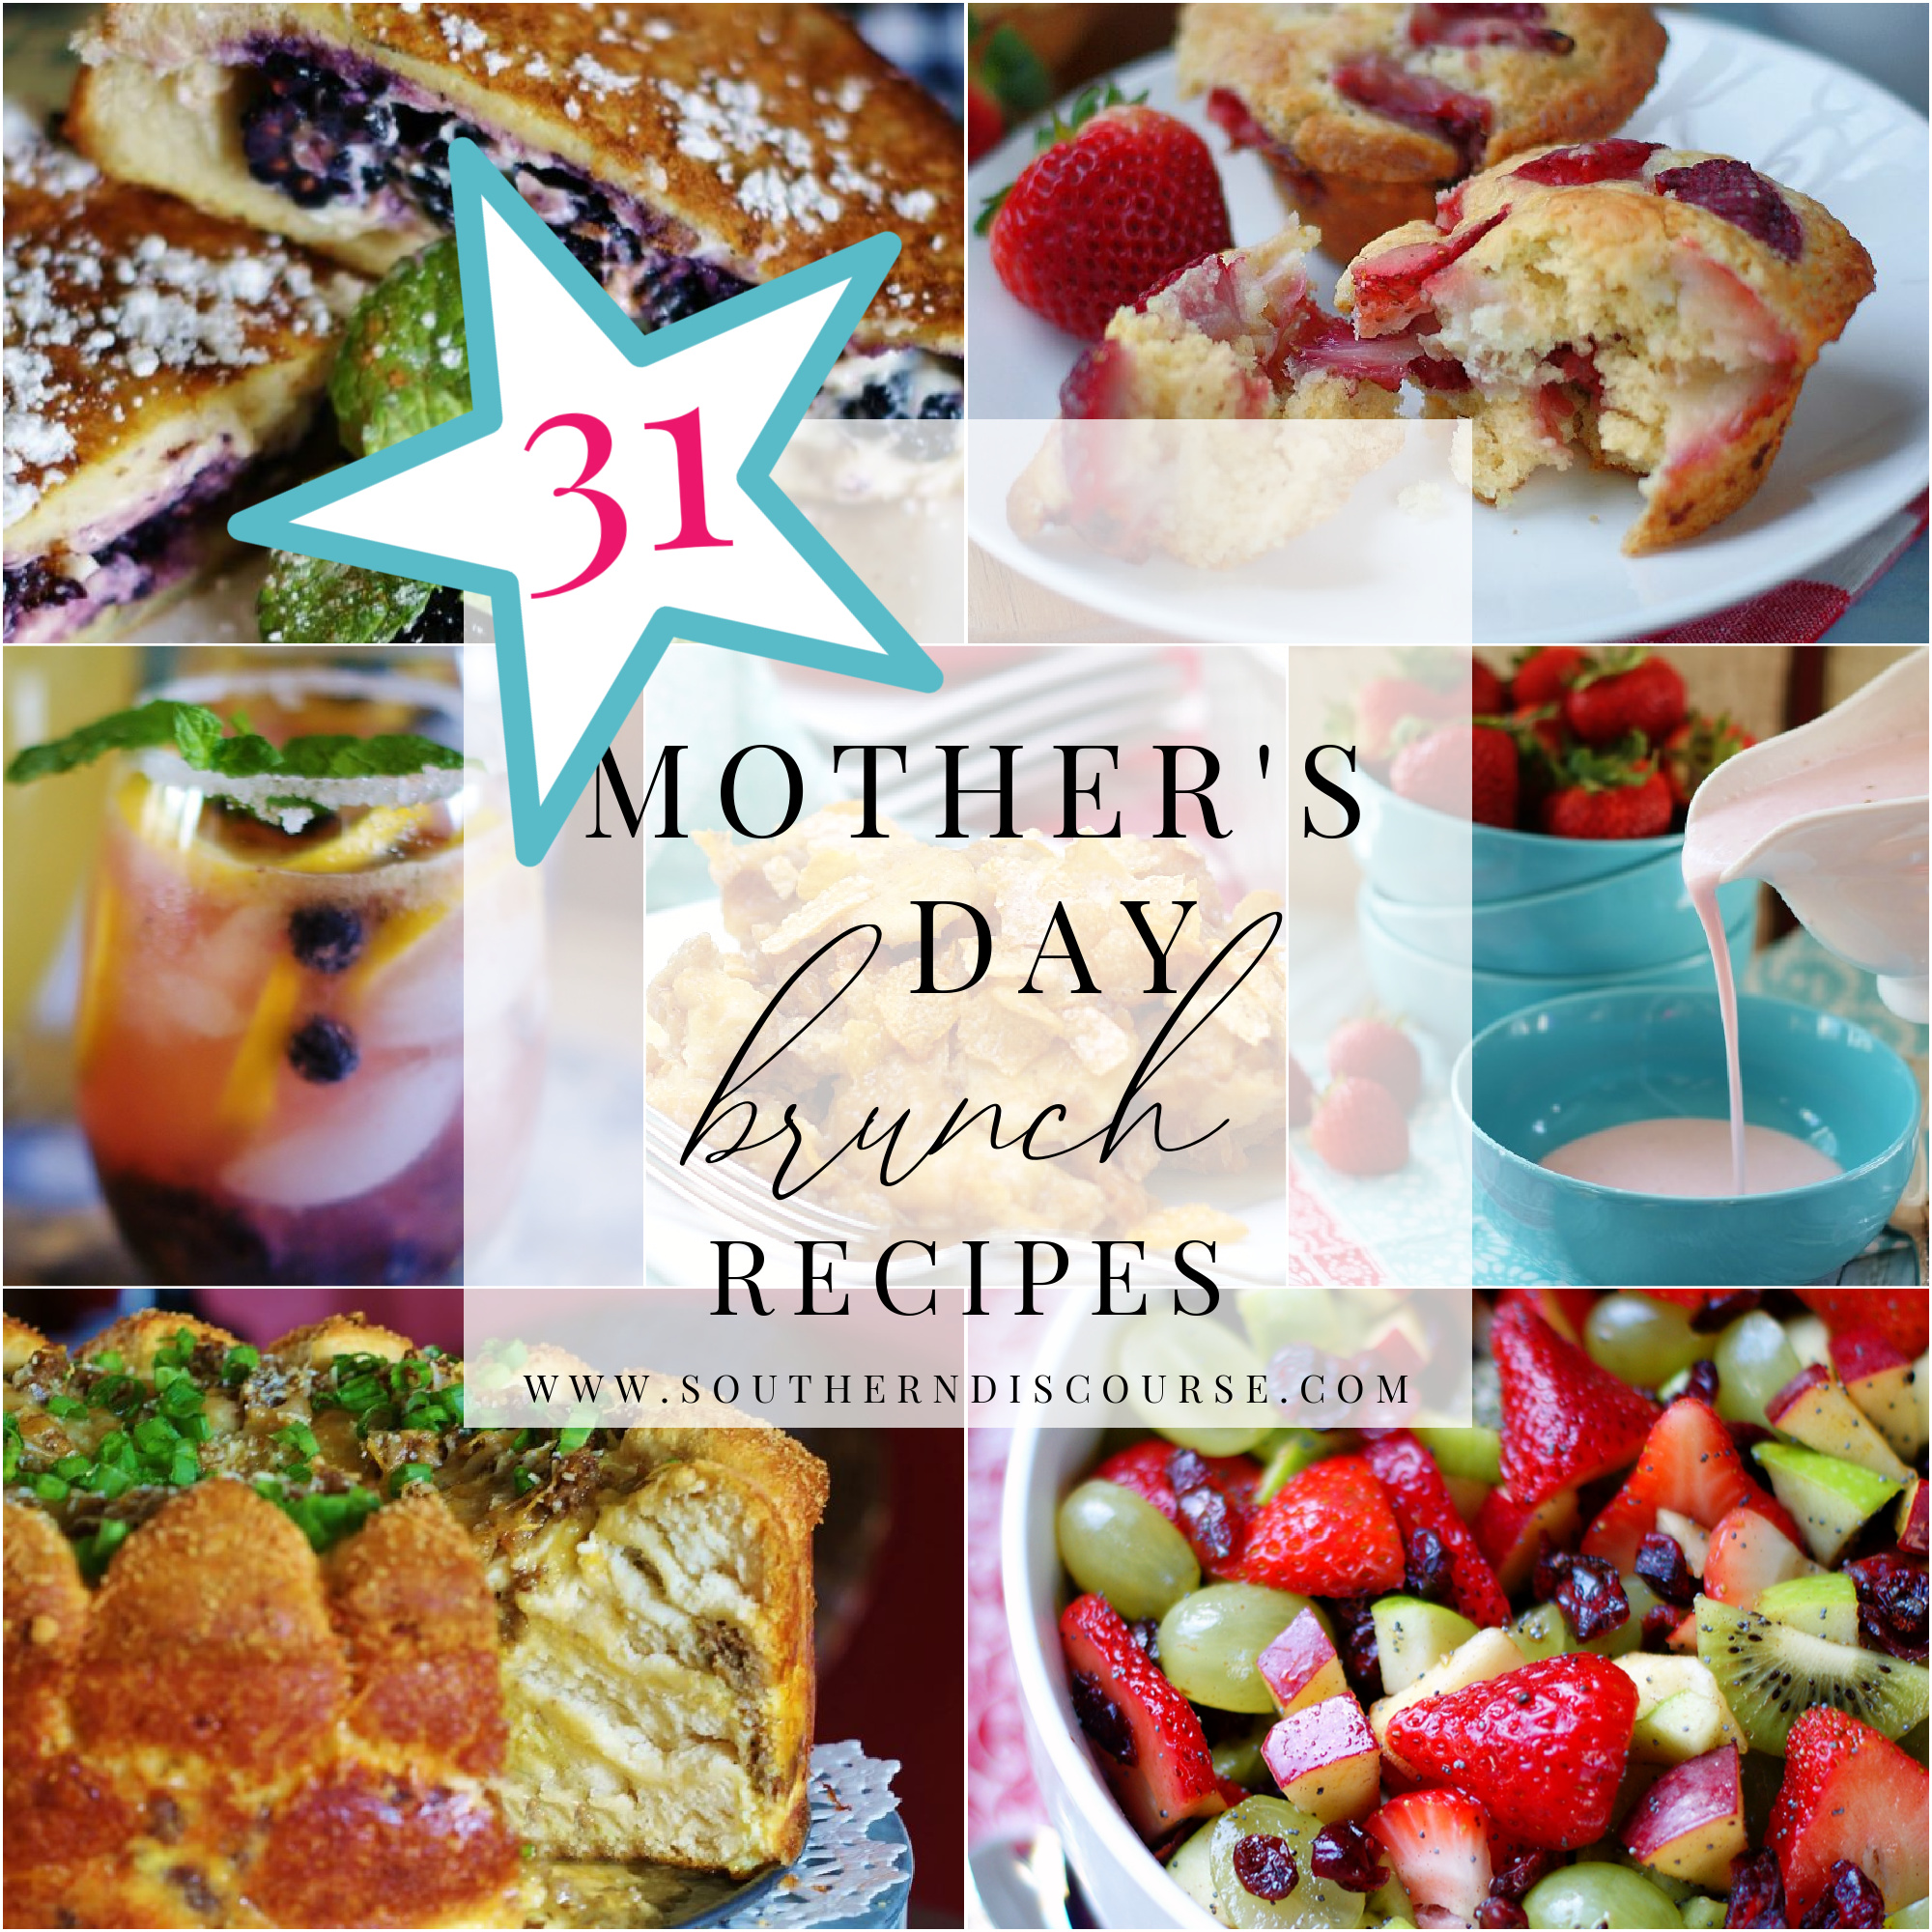 mothers day brunch recipes - breakfast casseroles, salads, drinks, breads, fruit pizzas and more!